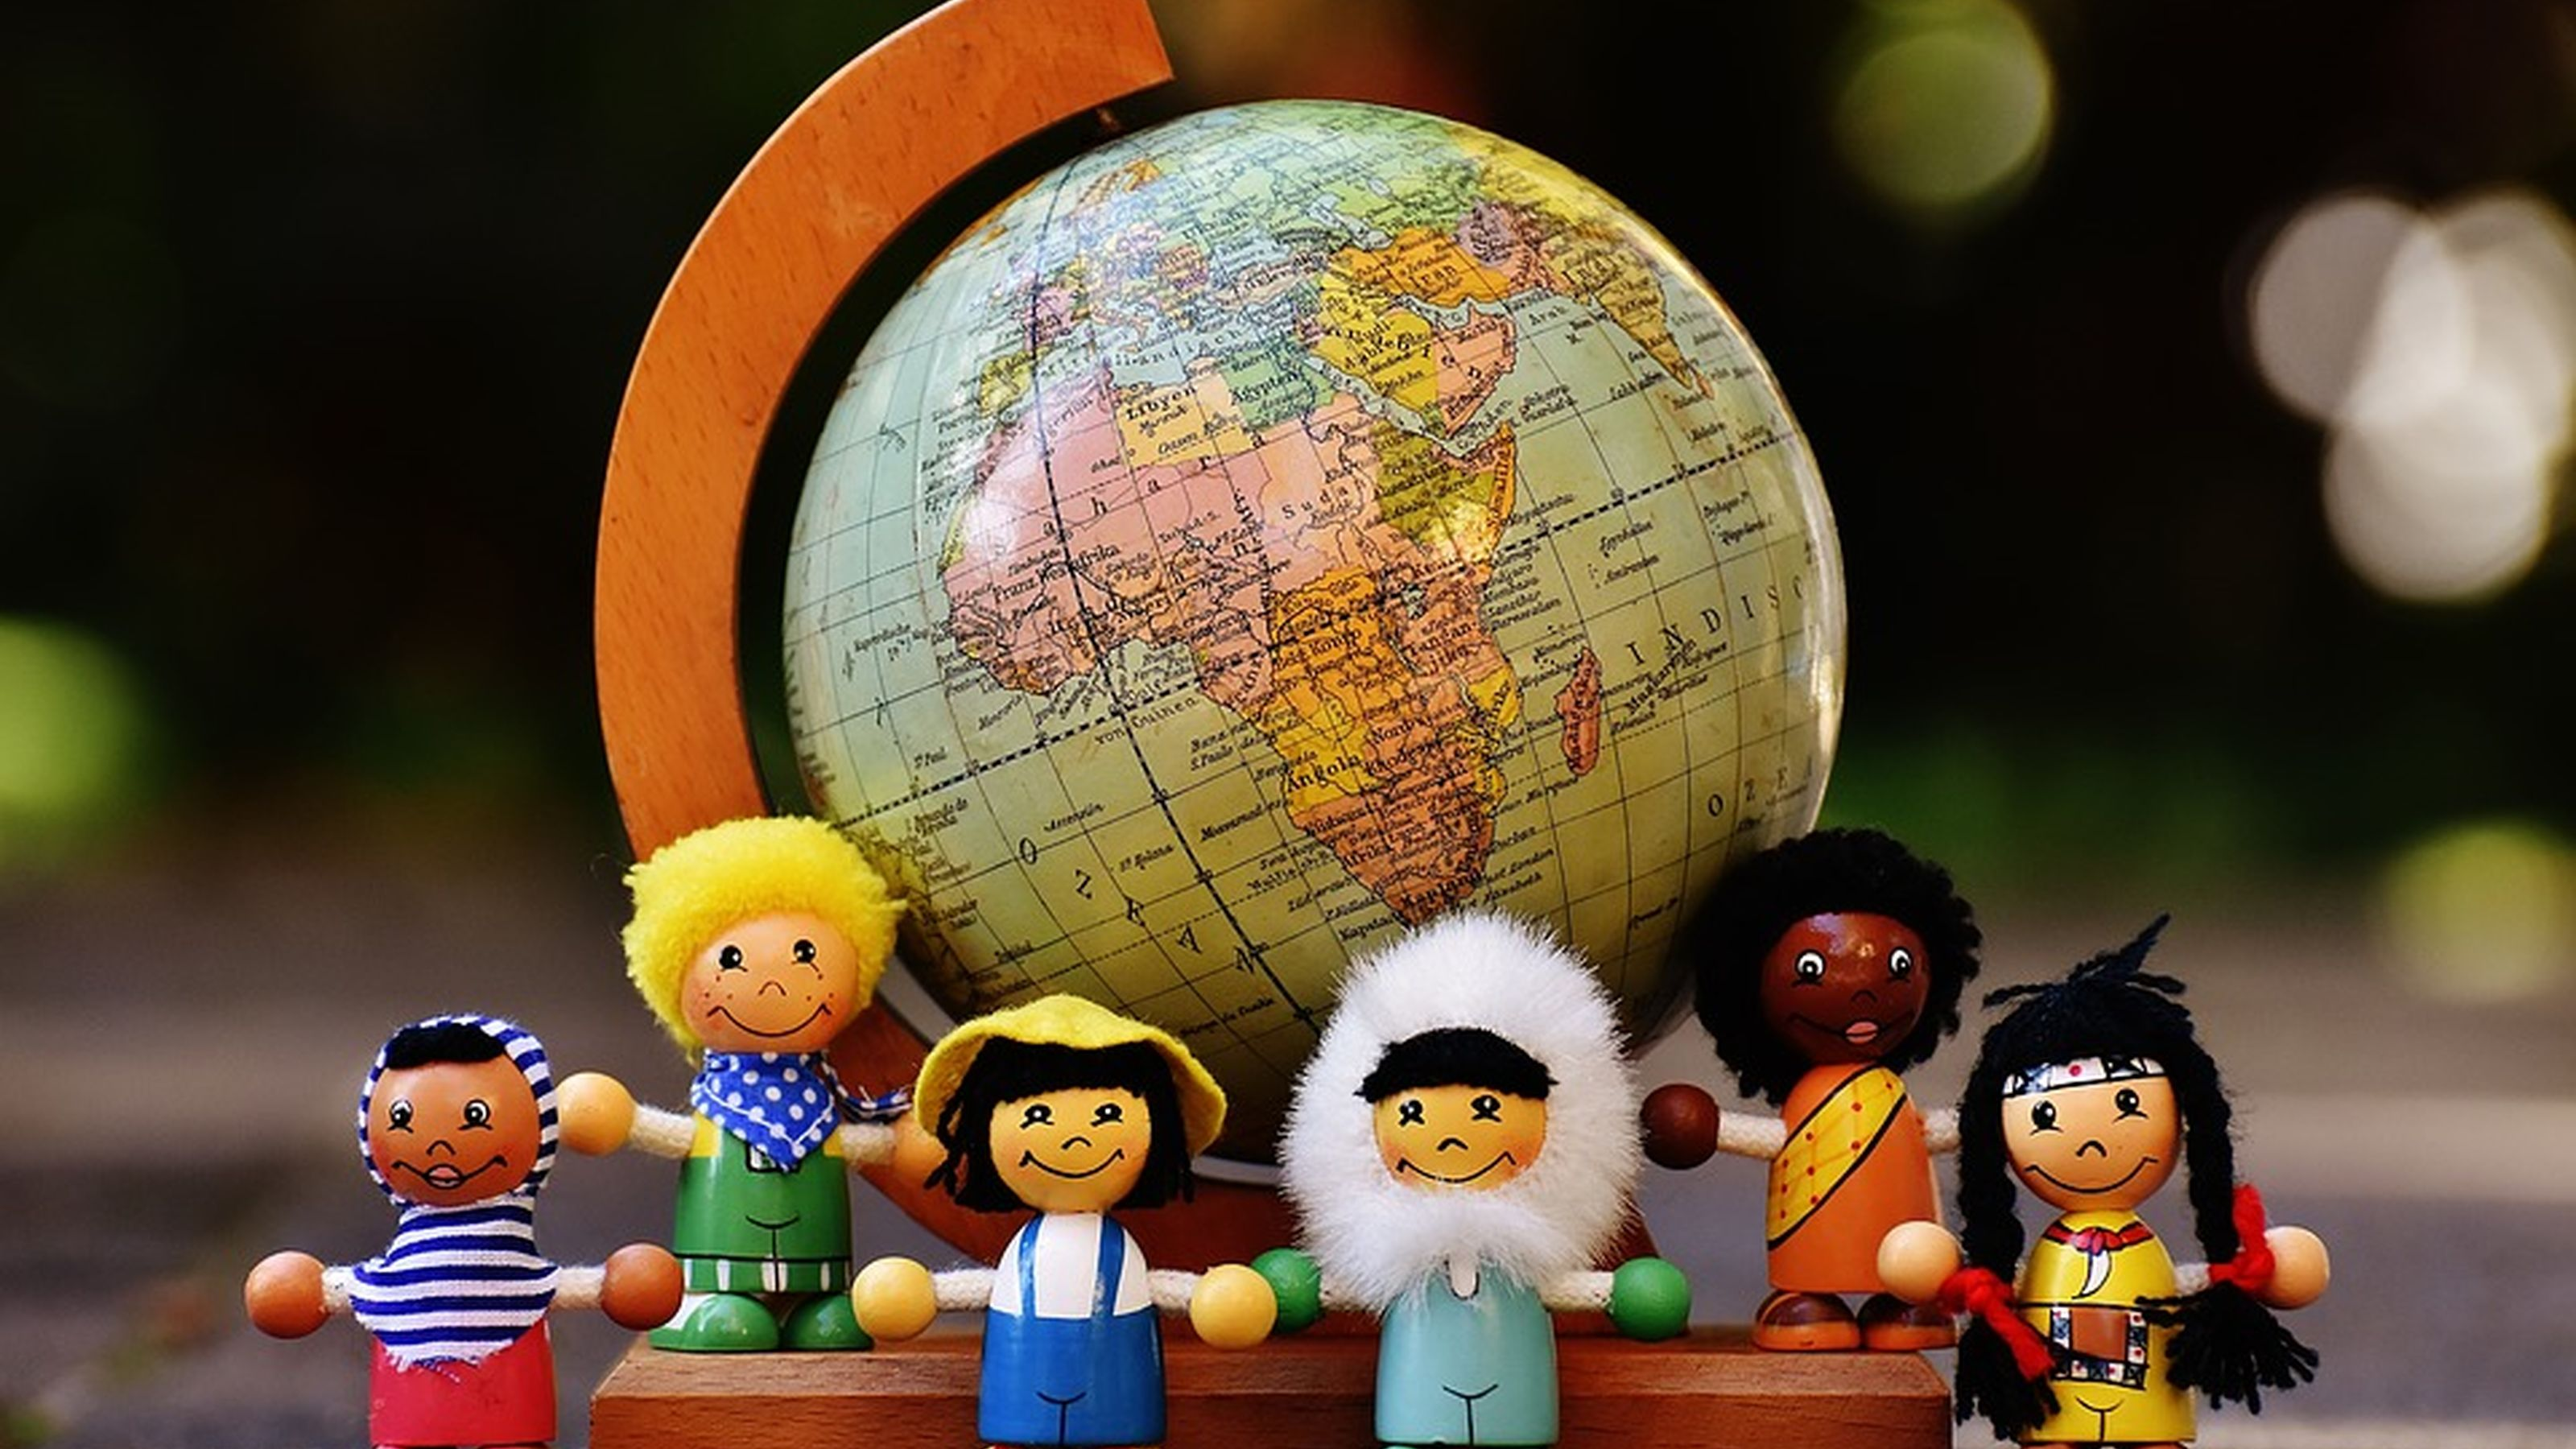 figurines from around the world standing in front of a globe